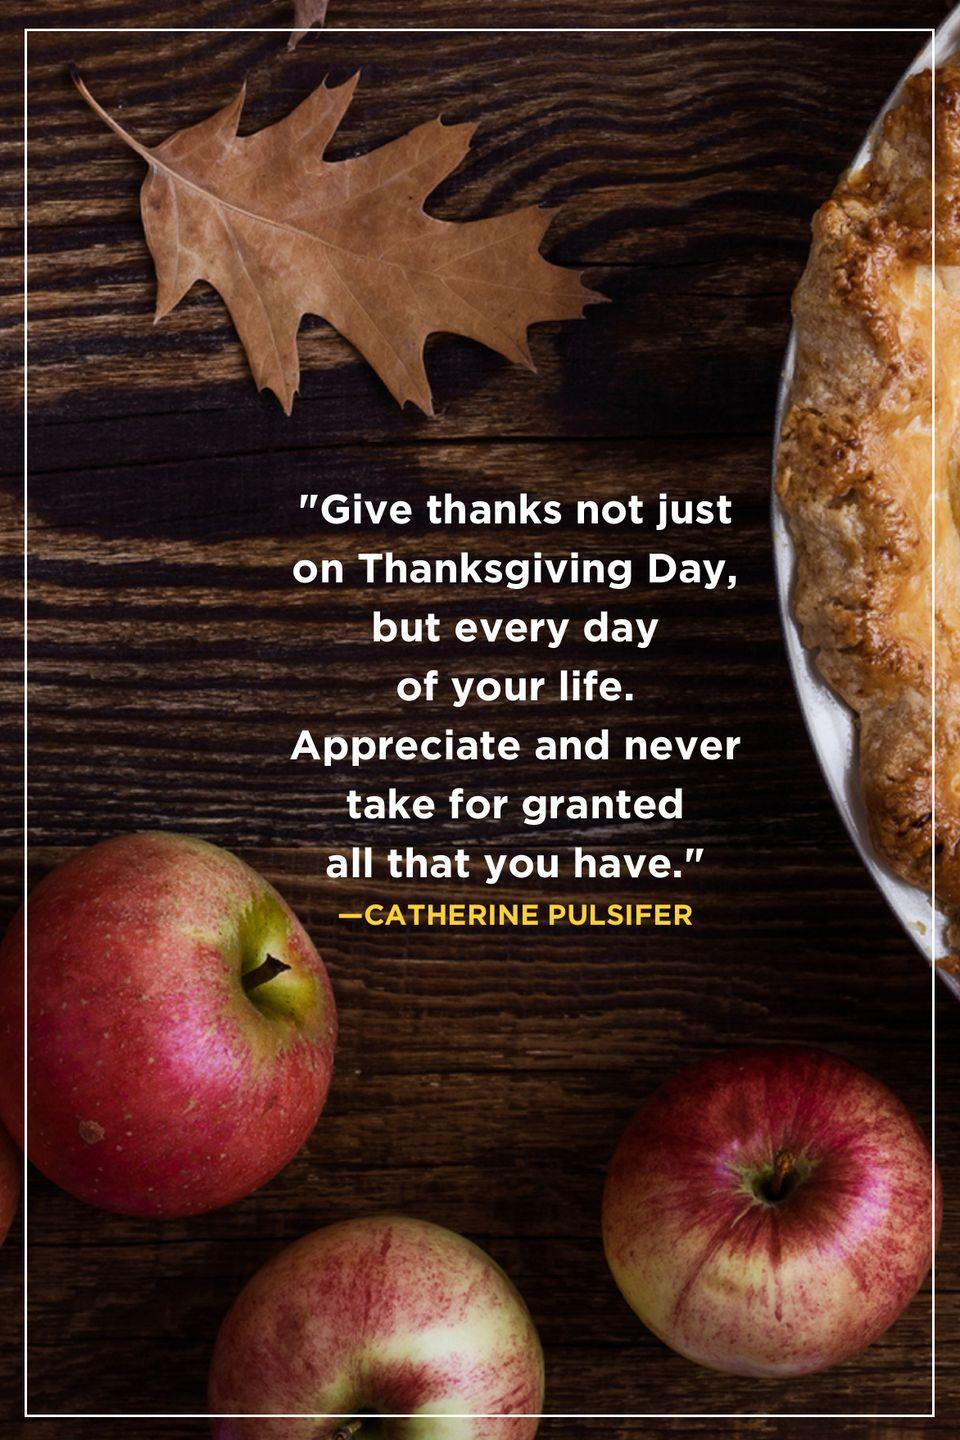 """<p>""""Give thanks not just on Thanksgiving Day, but every day of your life. Appreciate and never take for granted all that you have.""""</p>"""